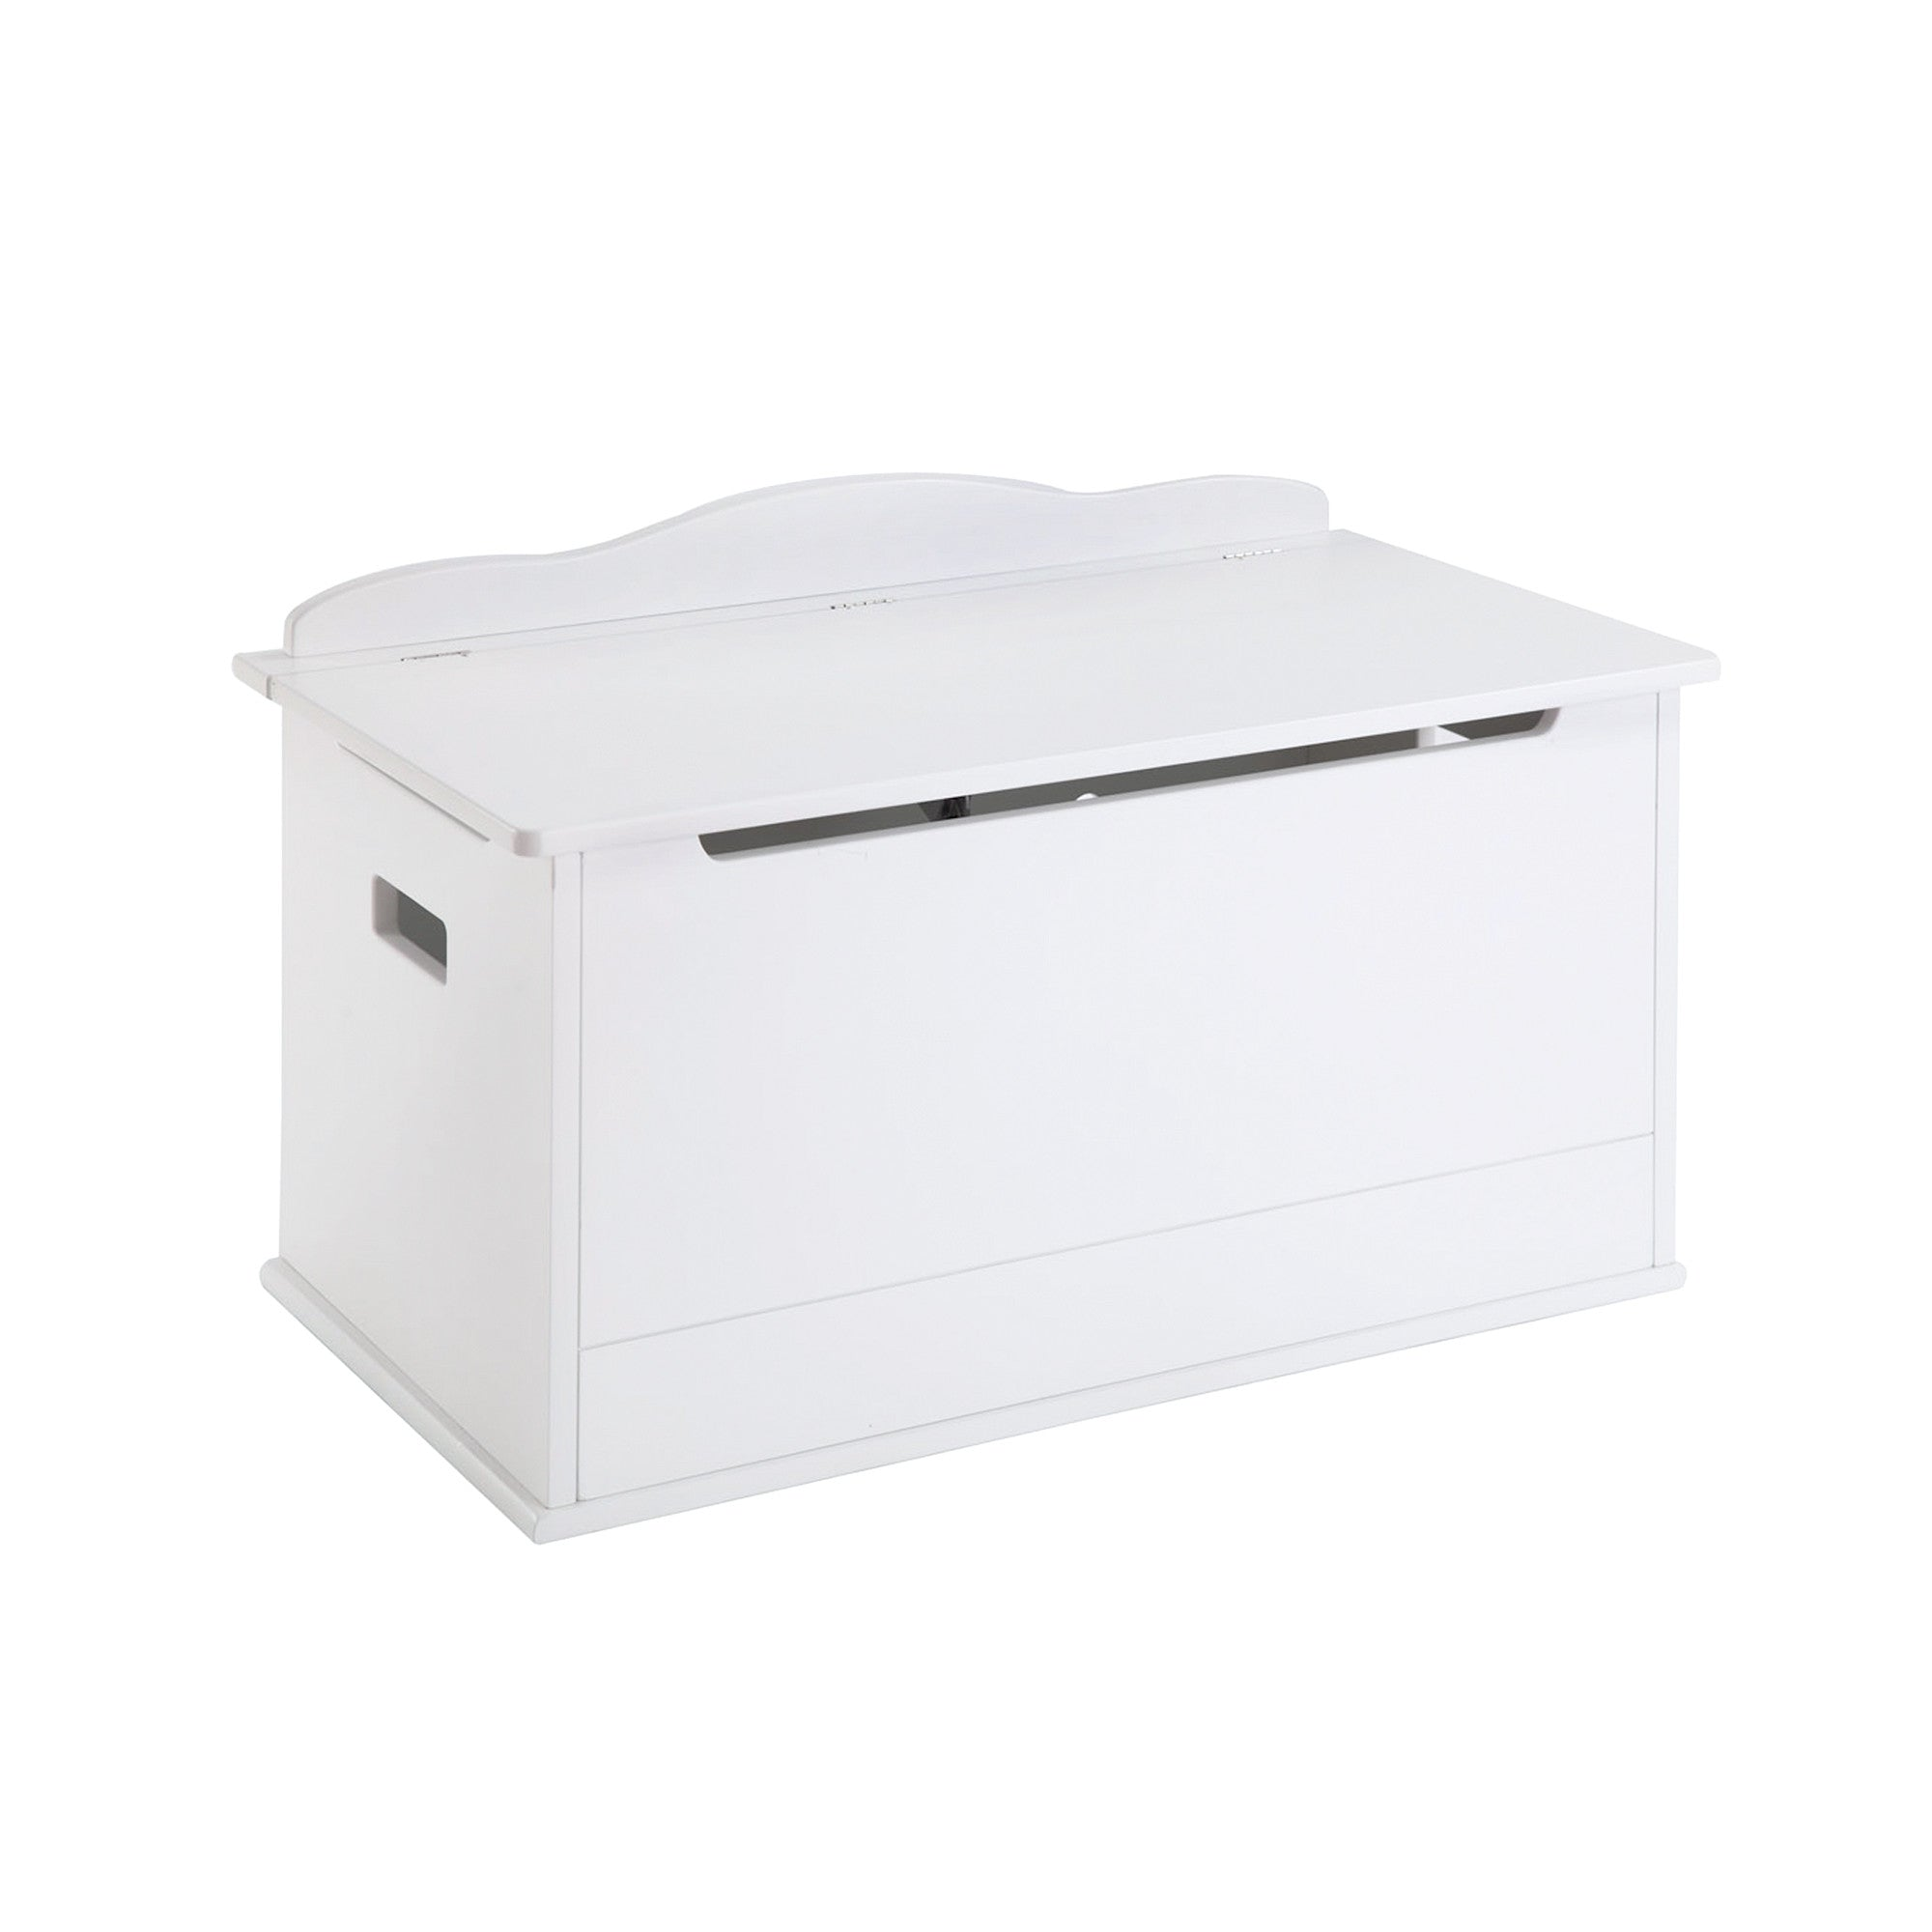 Guidecraft Expressions Toy Box: White G87103